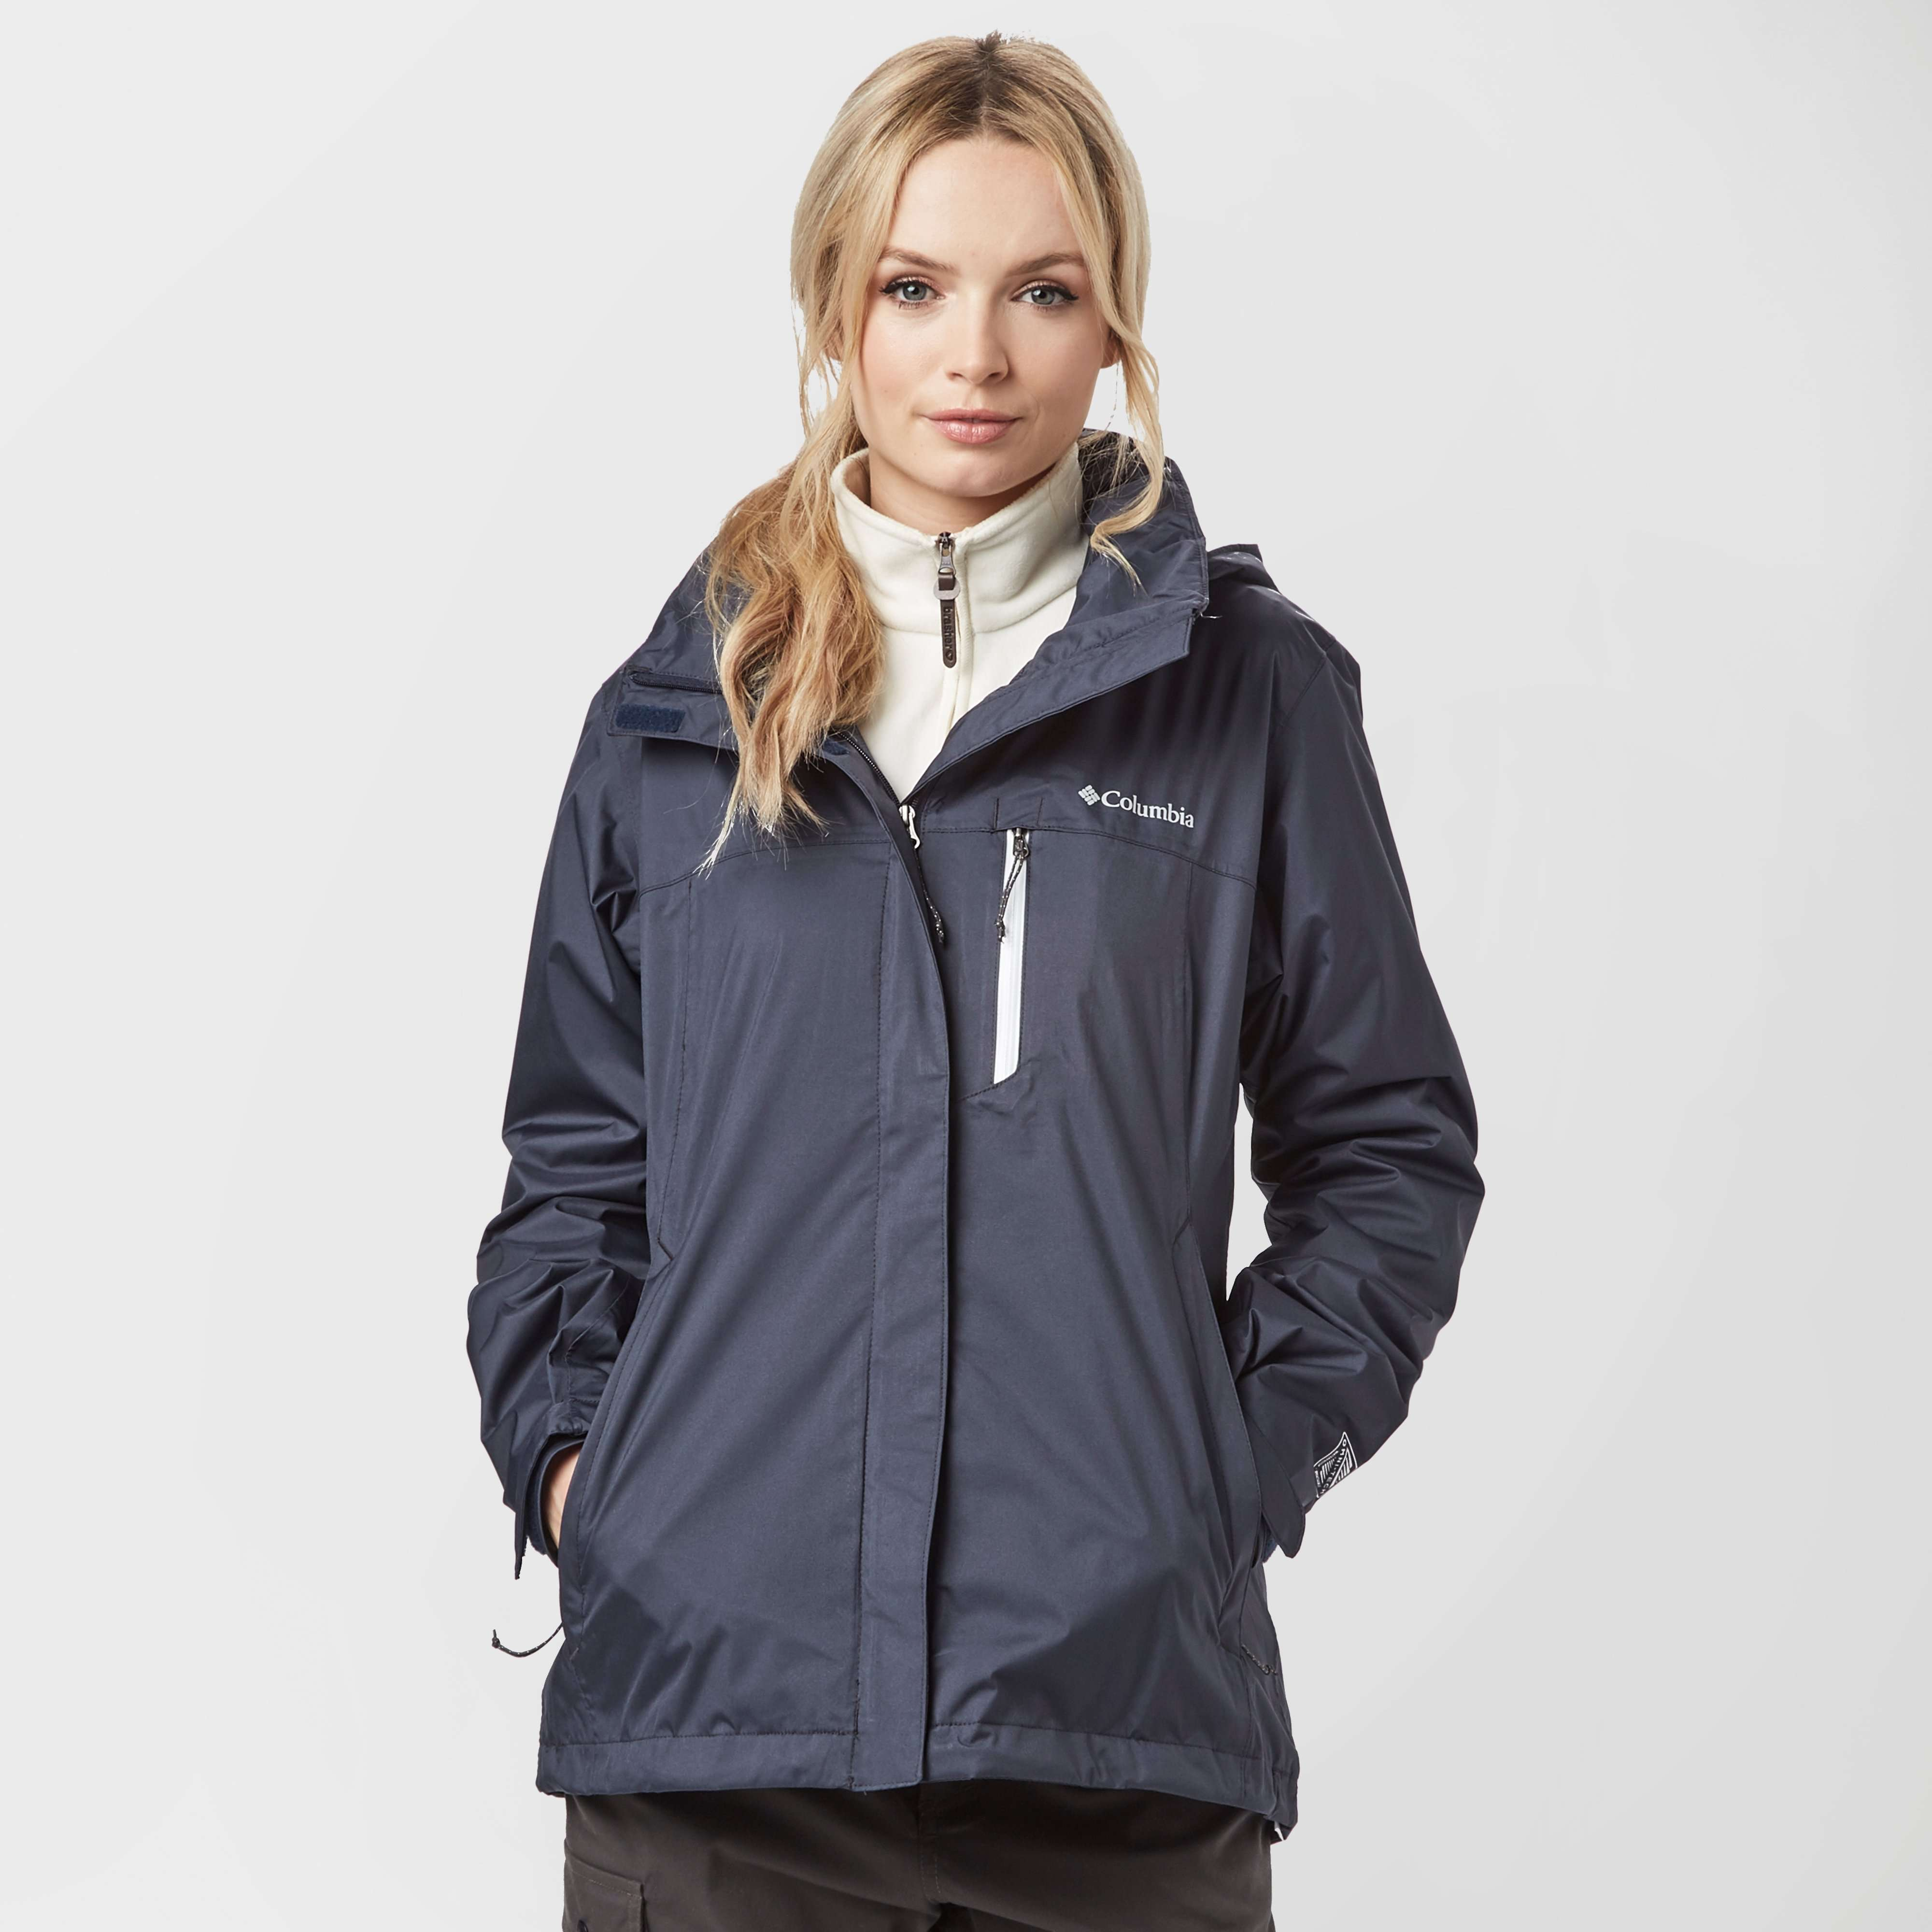 COLUMBIA Women's Pouration Jacket